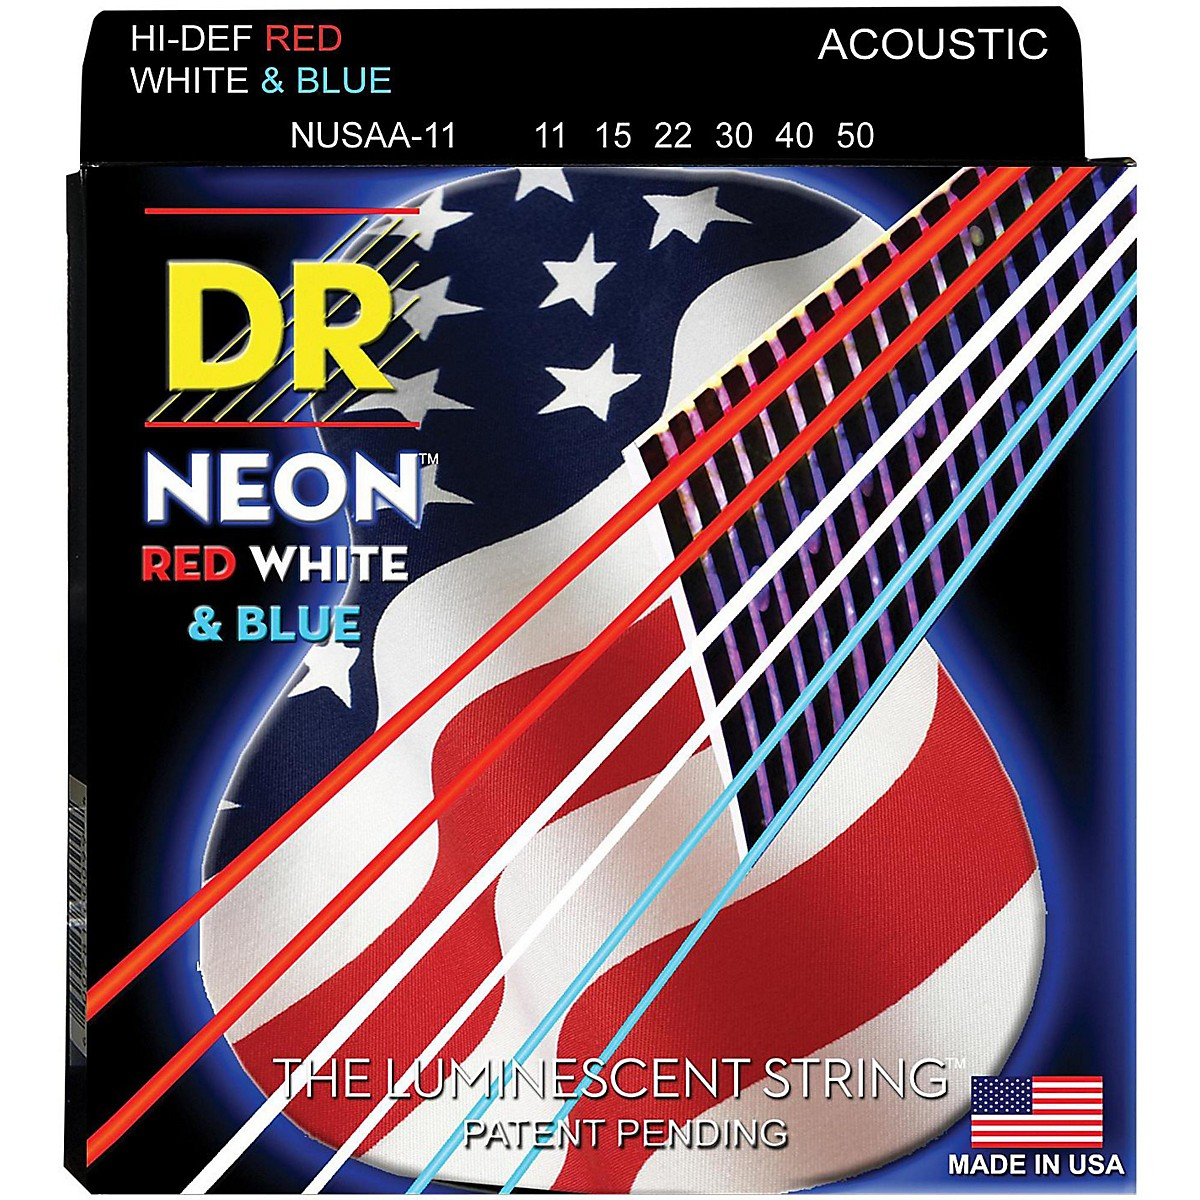 DR Strings Hi-Def NEON Red, White & Blue Acoustic Guitar Medium-Lite Strings